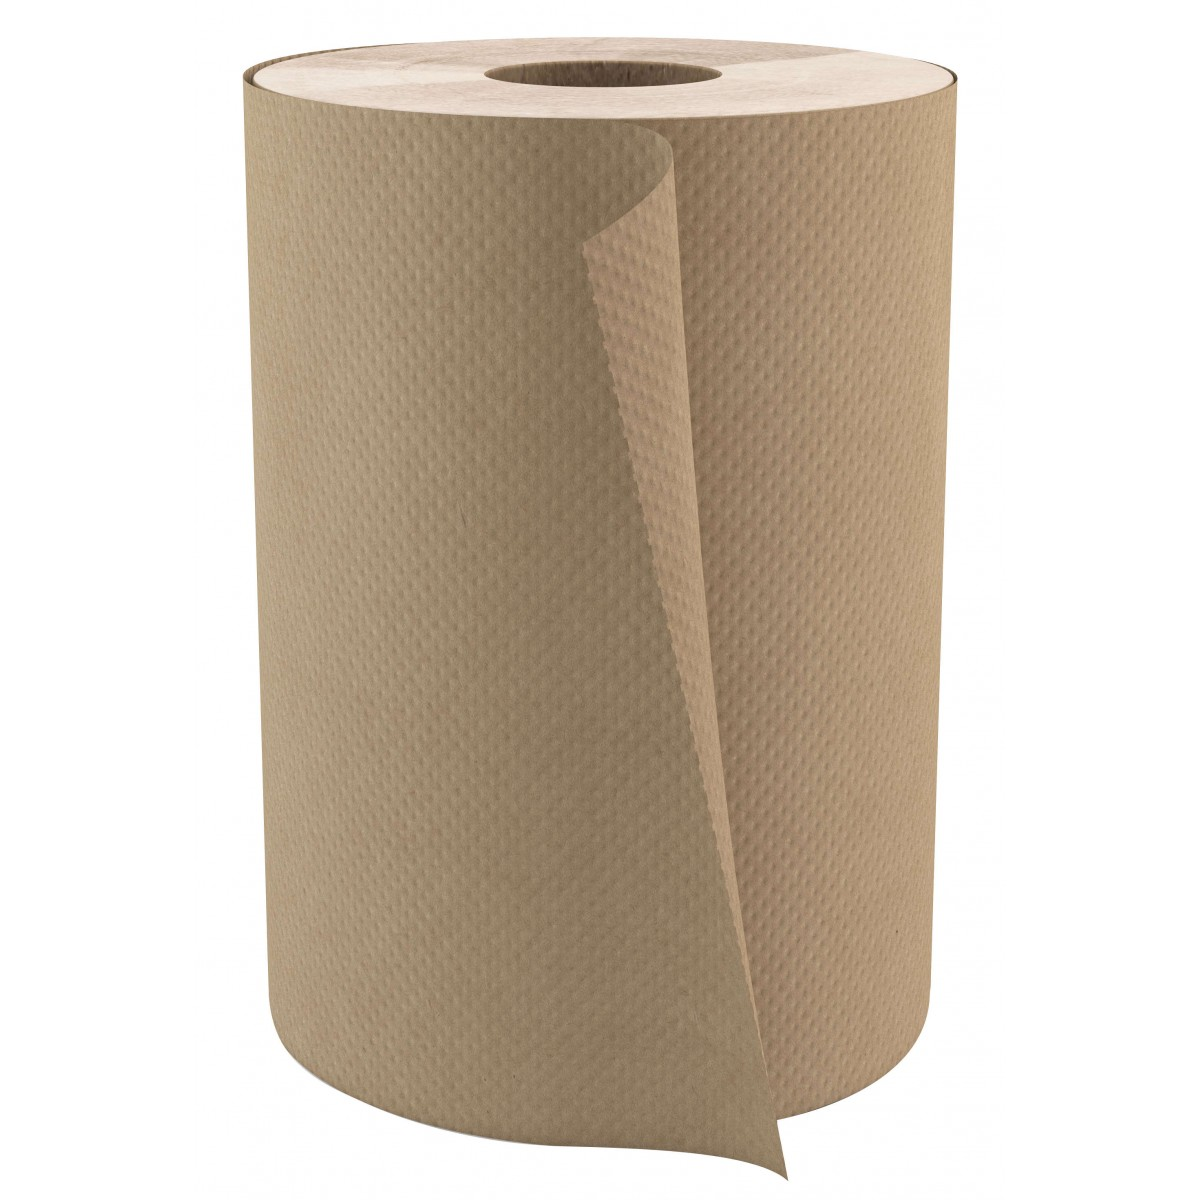 Roll Paper Towel Brown 7 8 Sheet 350 39 Case Of 12